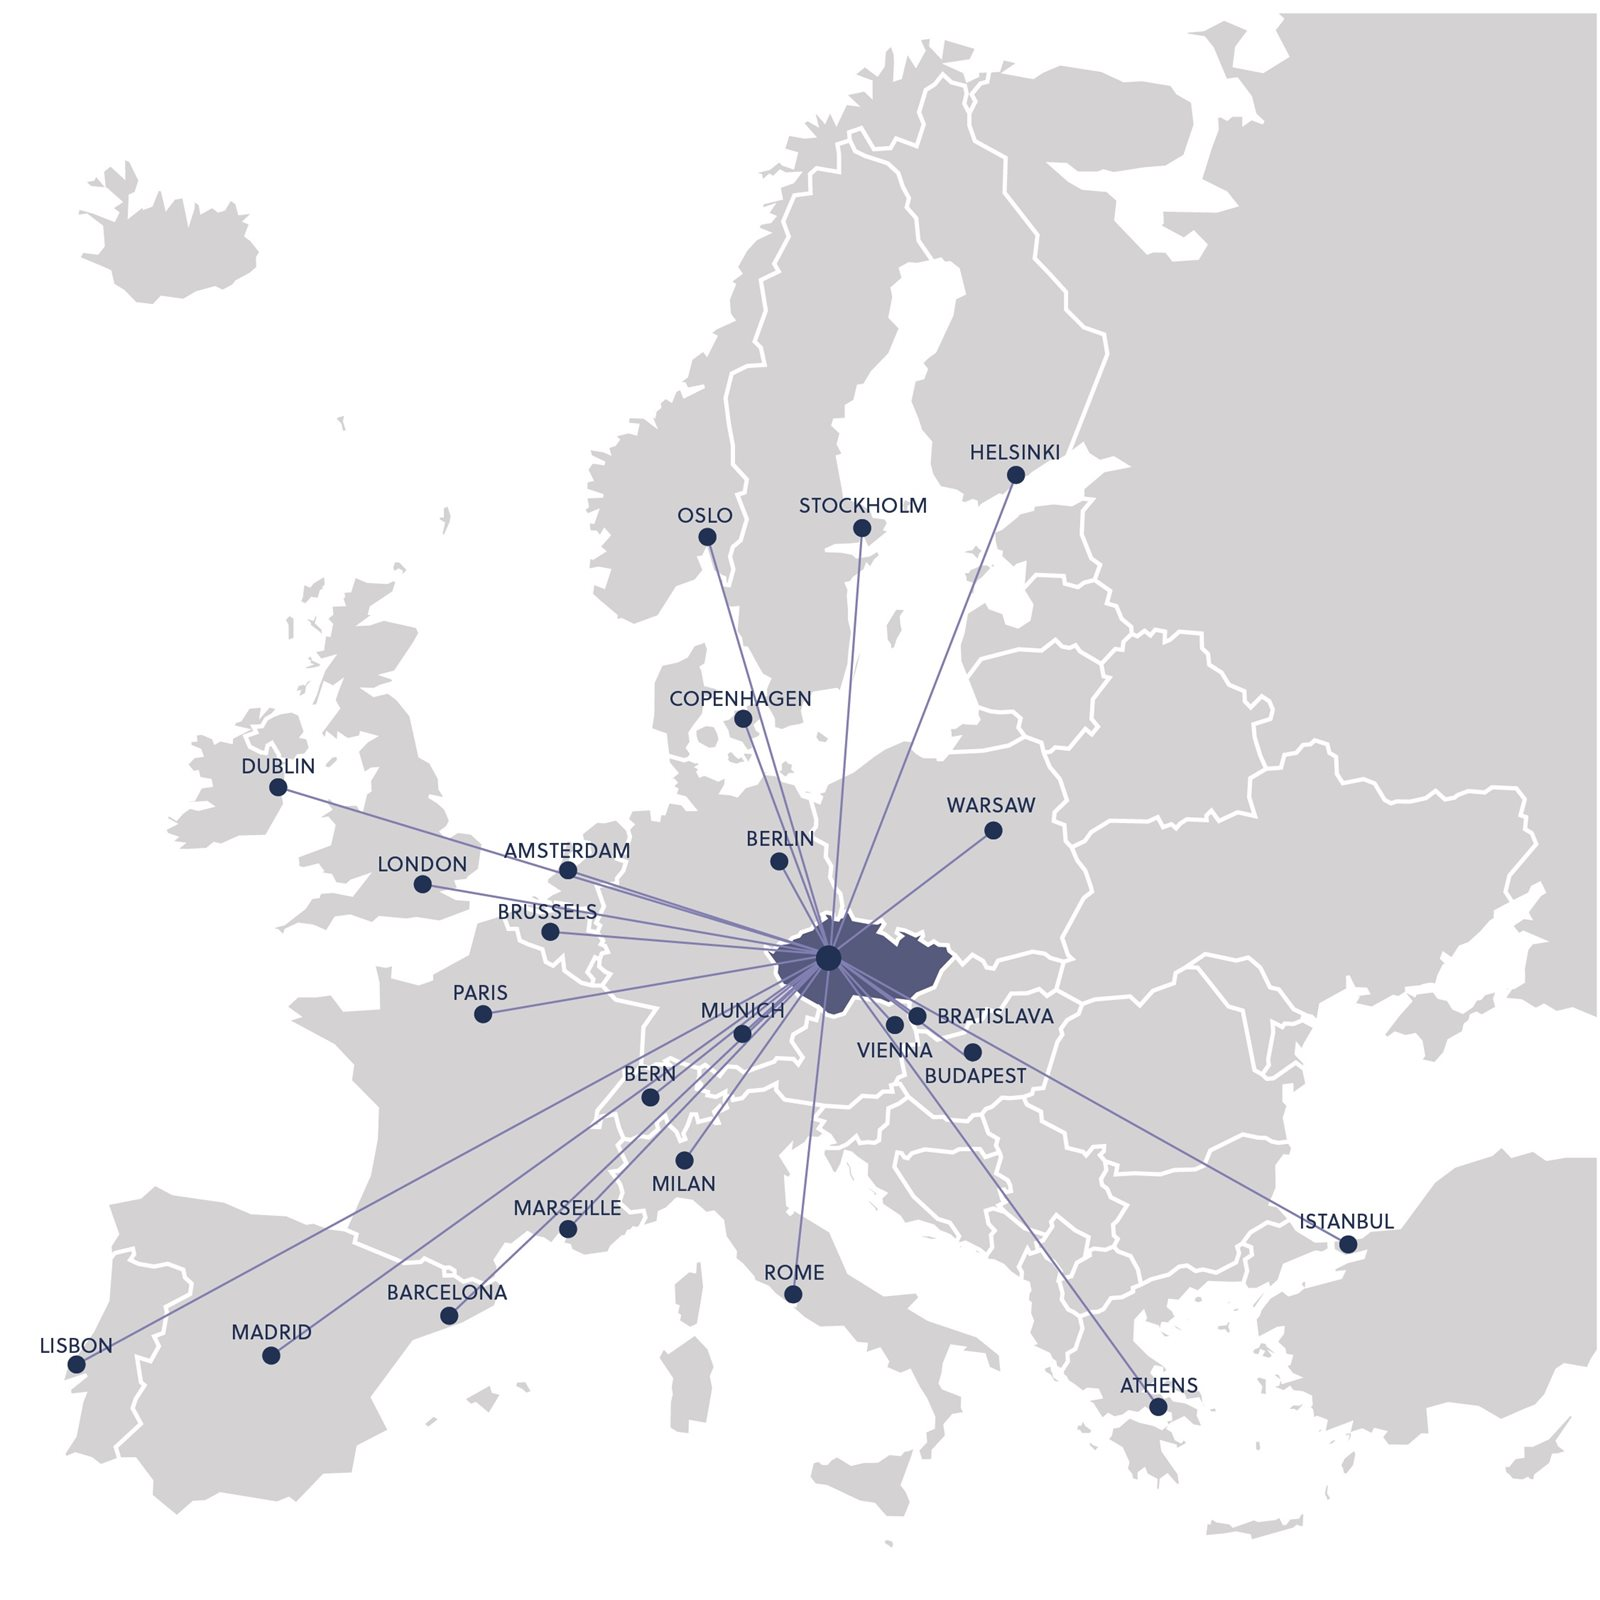 Most European destinations can be reached from Prague within a two-hour flight